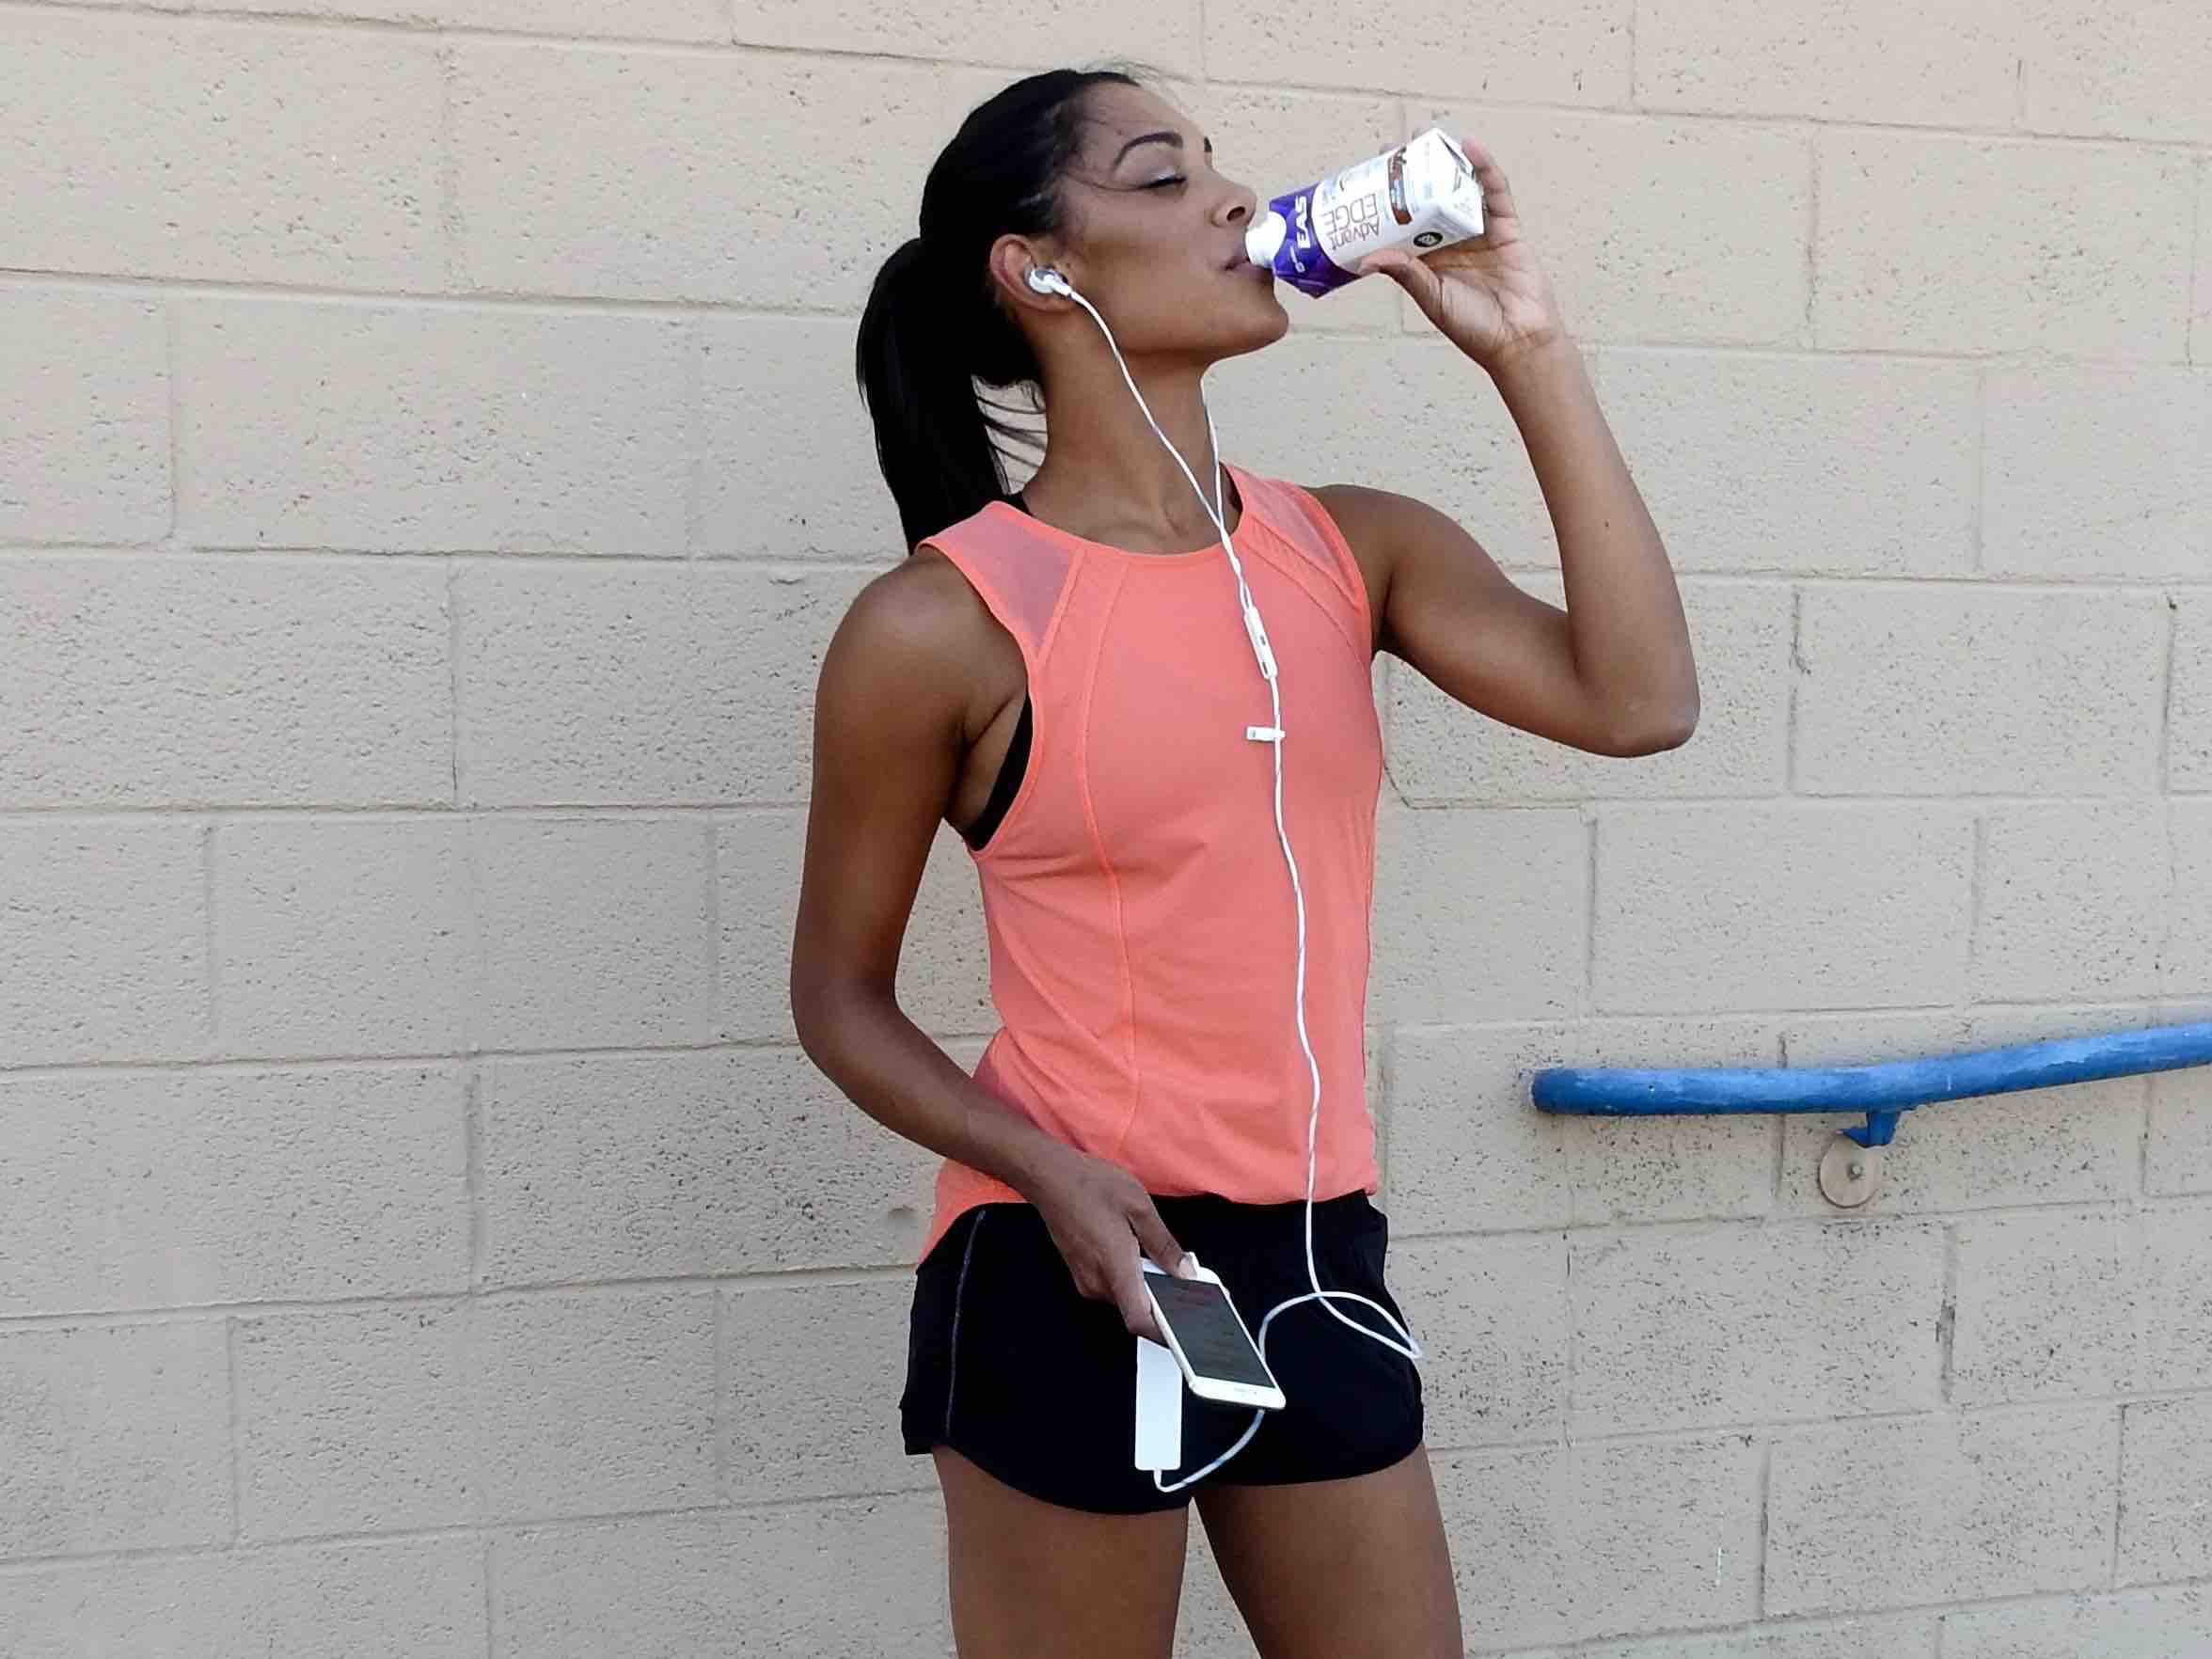 What to eat before you workout to lose weight